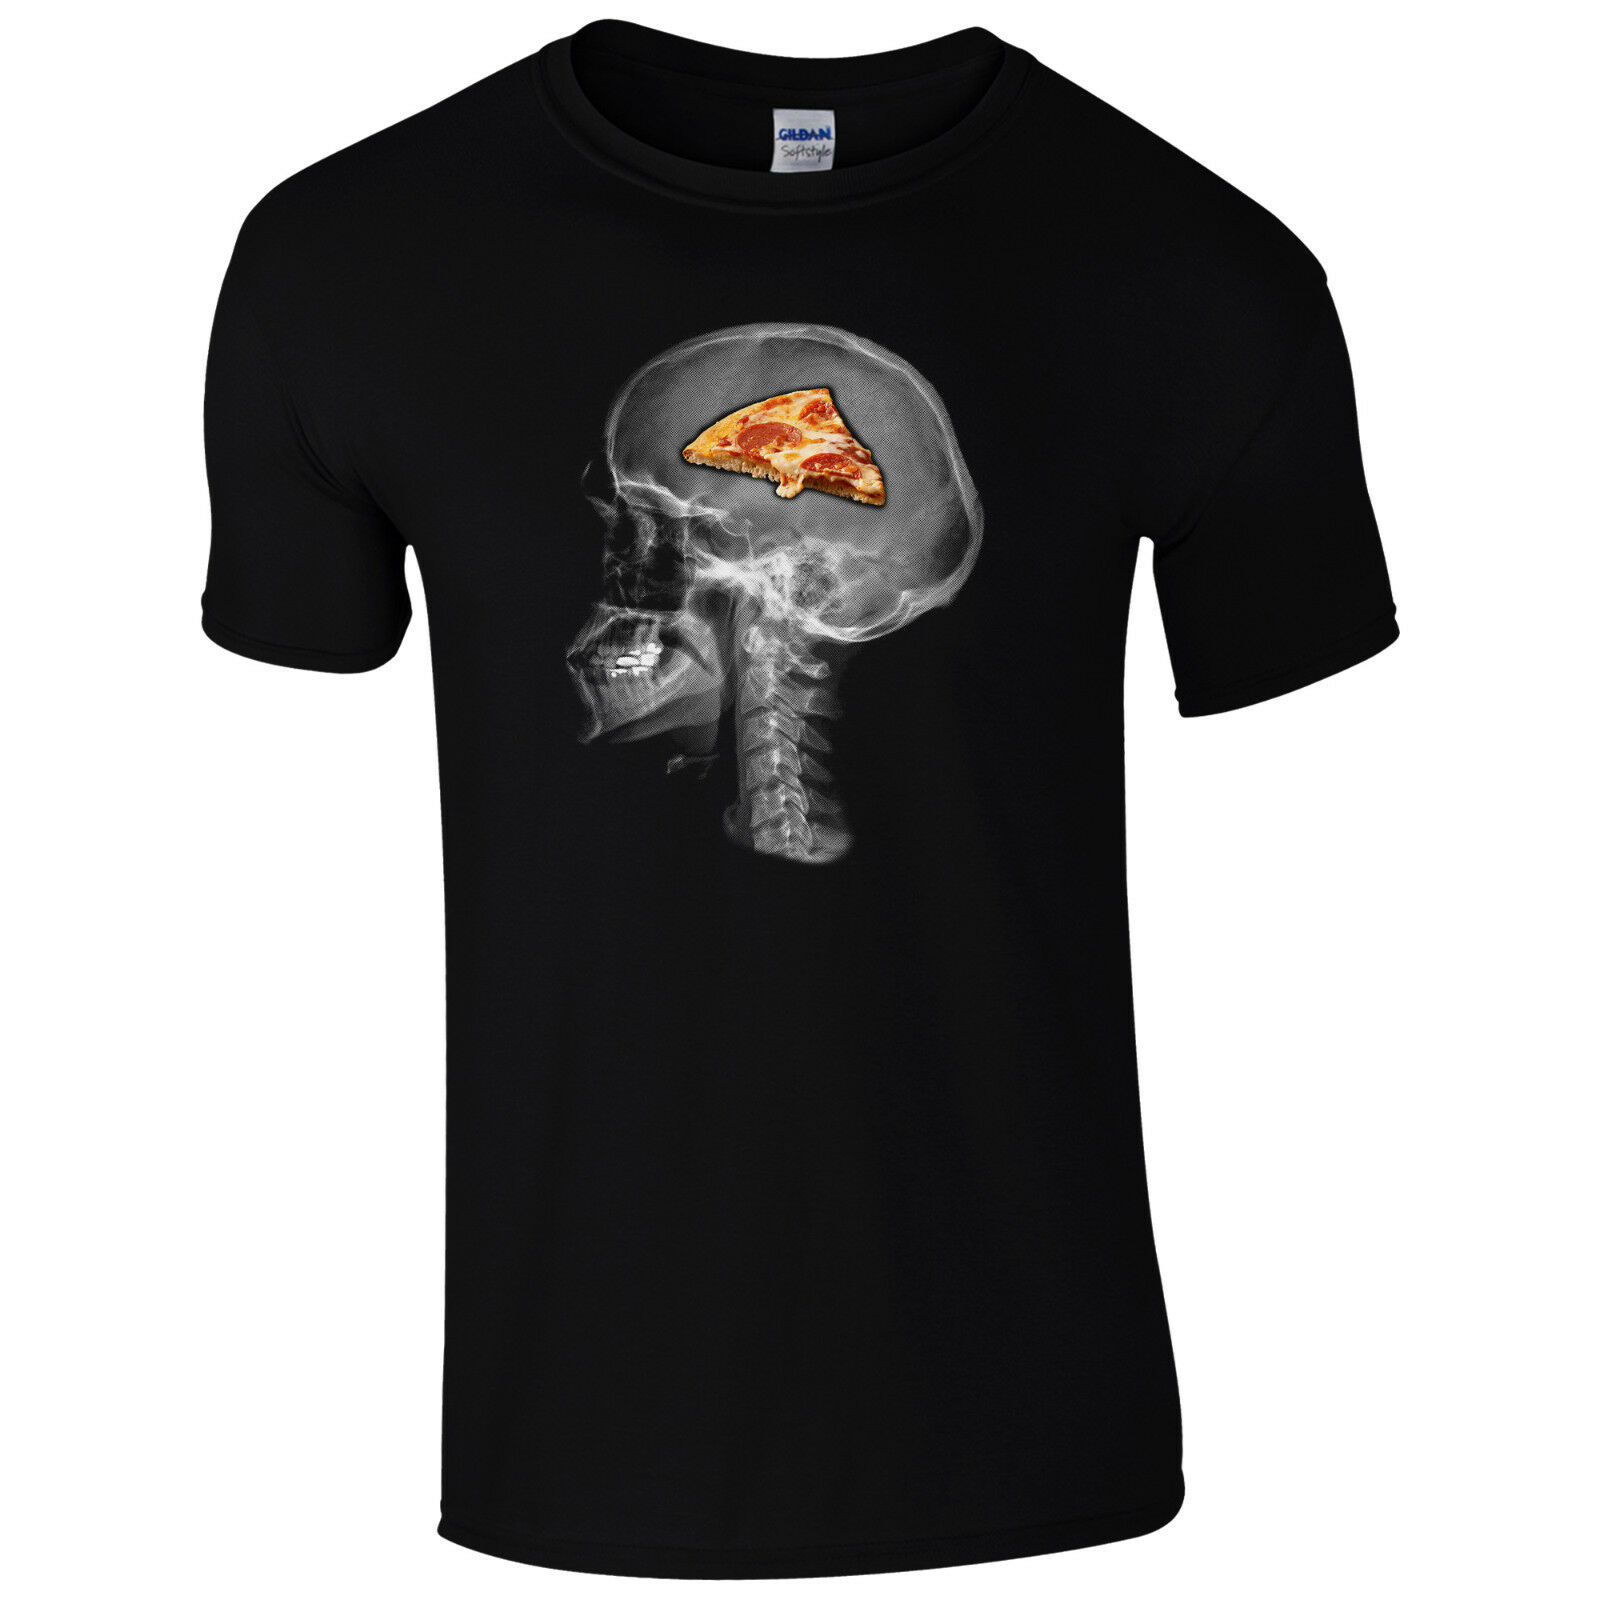 Pizza On The Brain T-Shirt - Funny Skull X-Ray Food Lovers Gift Unisex Mens Top Cool Casual Pride T Shirt Men Unisex Fashion image